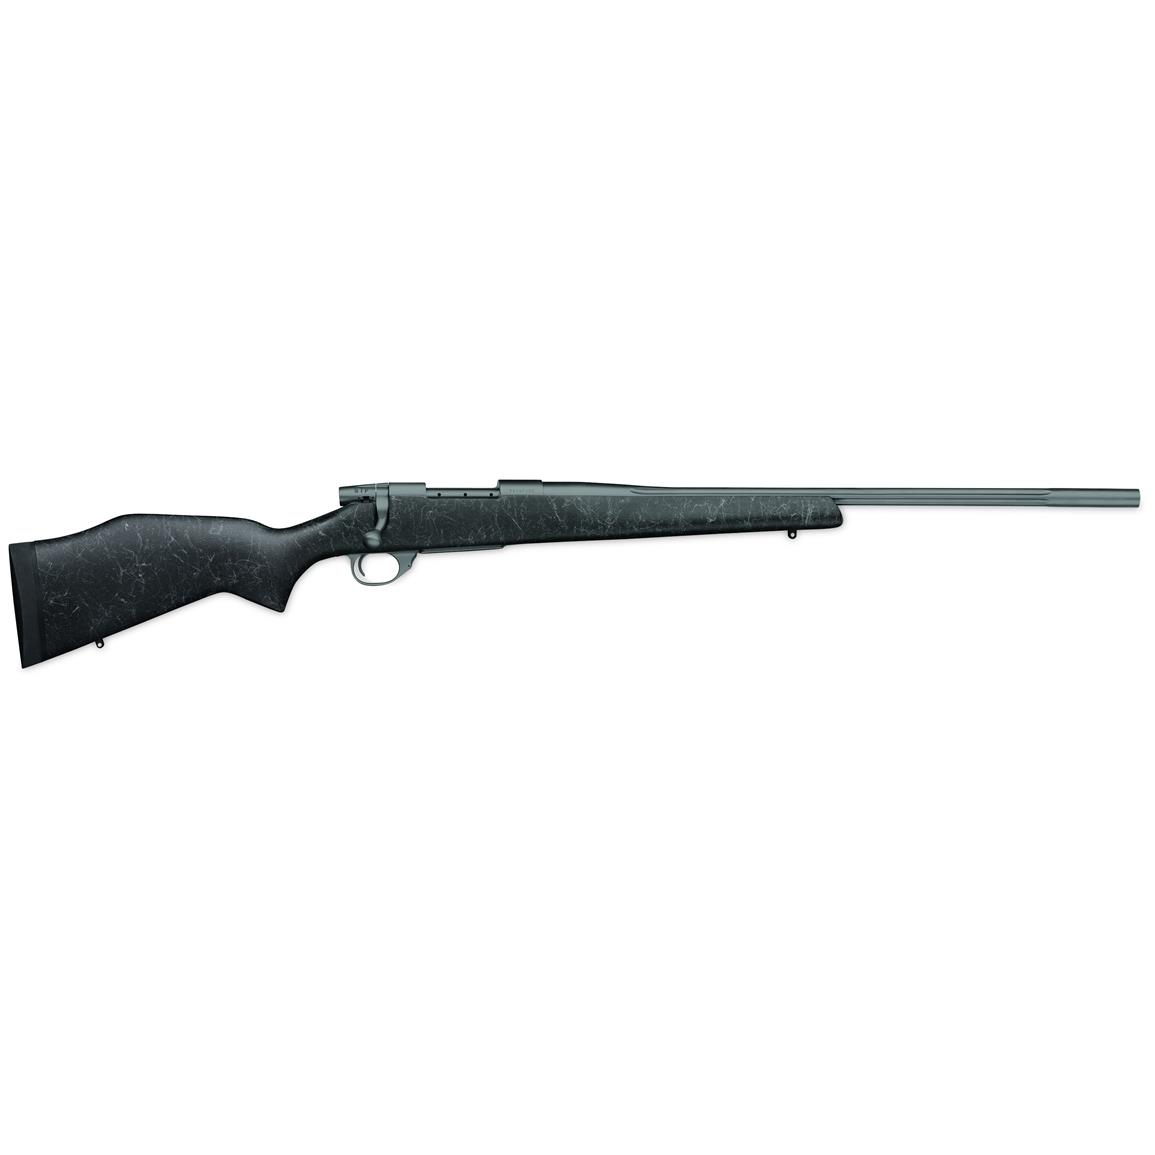 "Weatherby Vanguard 2 Back Country, Bolt Action, .270 Winchester, 24"" Barrel, 5+1 Rounds"